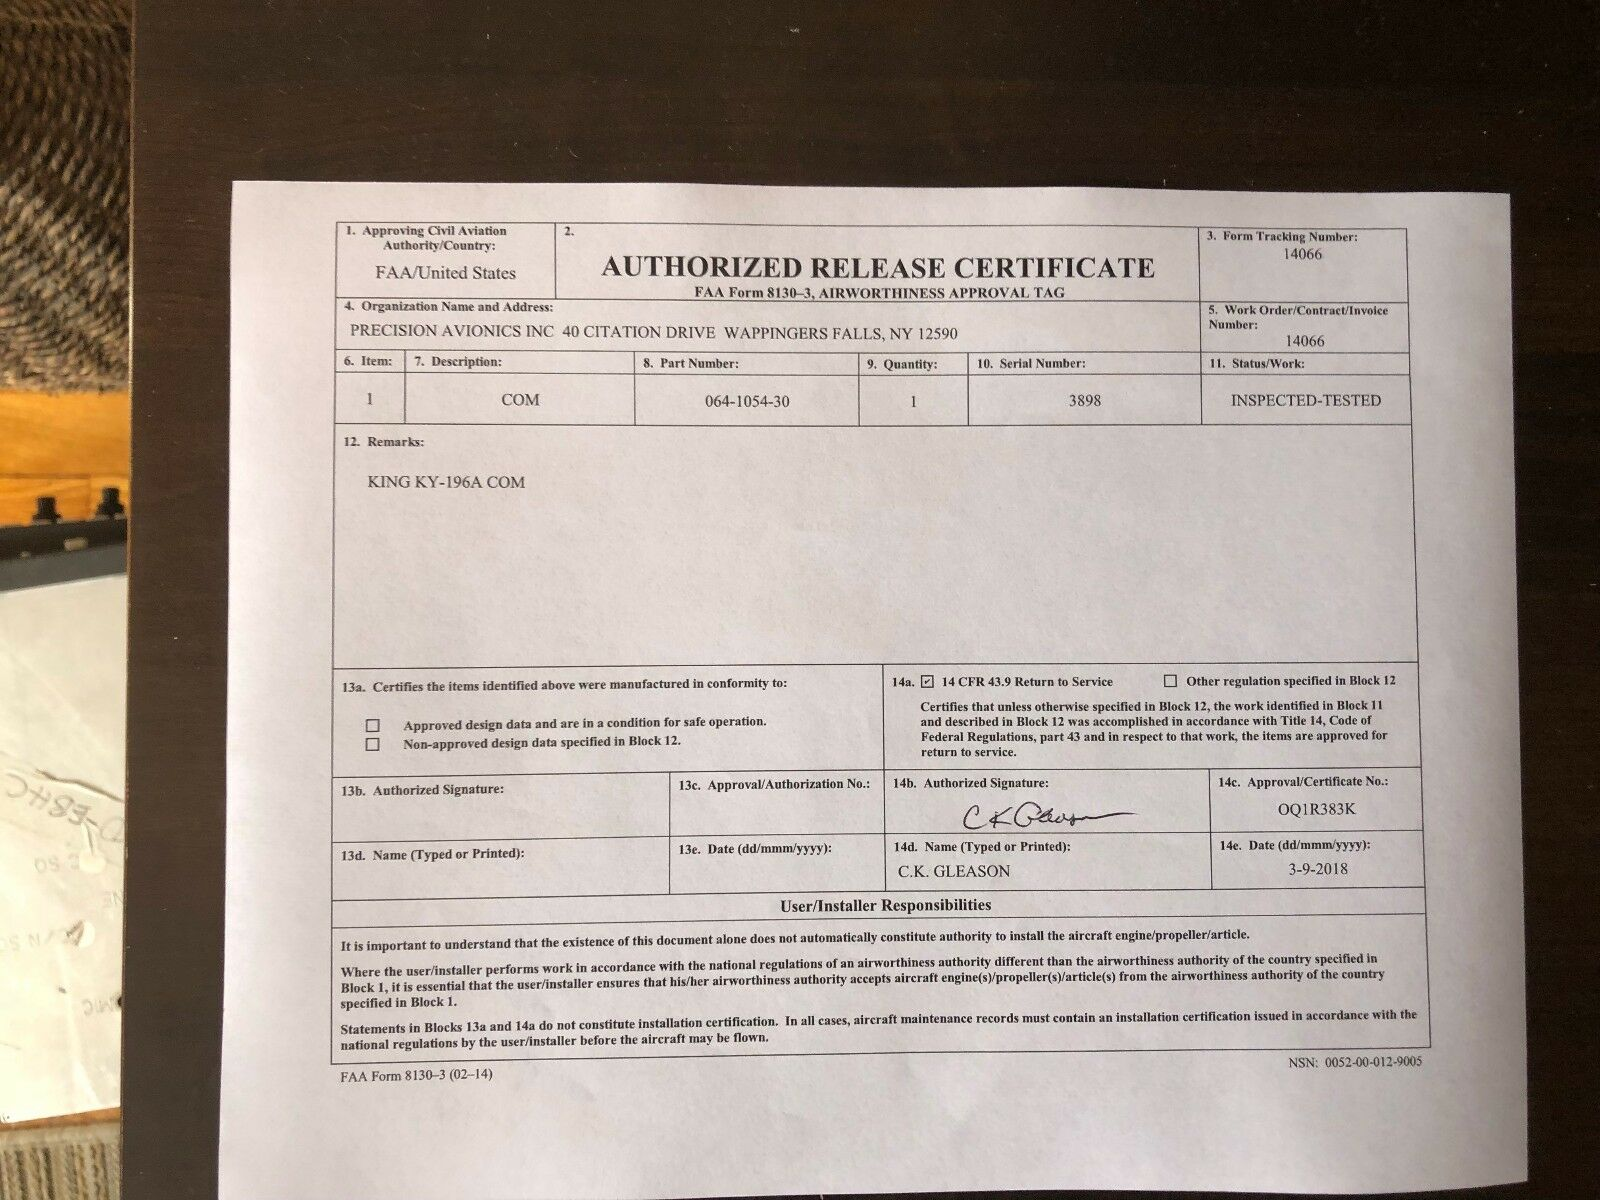 BENDIX/KING KY 196A 28 VDC P/N 064-1054-30 WITH FRESH FAA FORM 8130-3